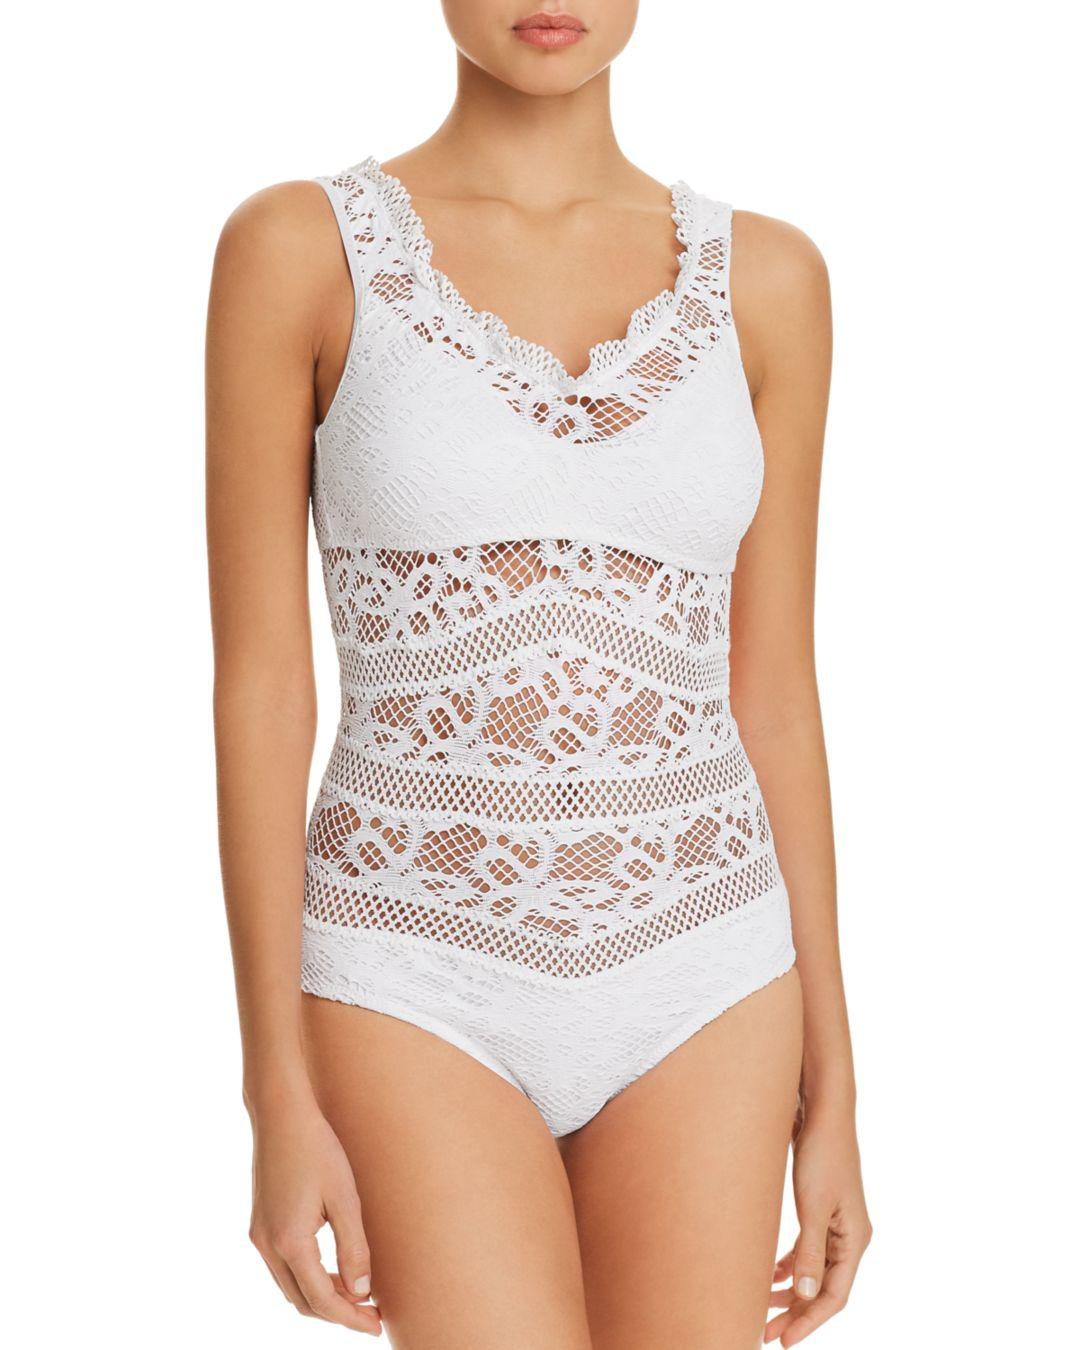 676421c858e Becca Captured Crochet One Piece Swimsuit in White - Lyst